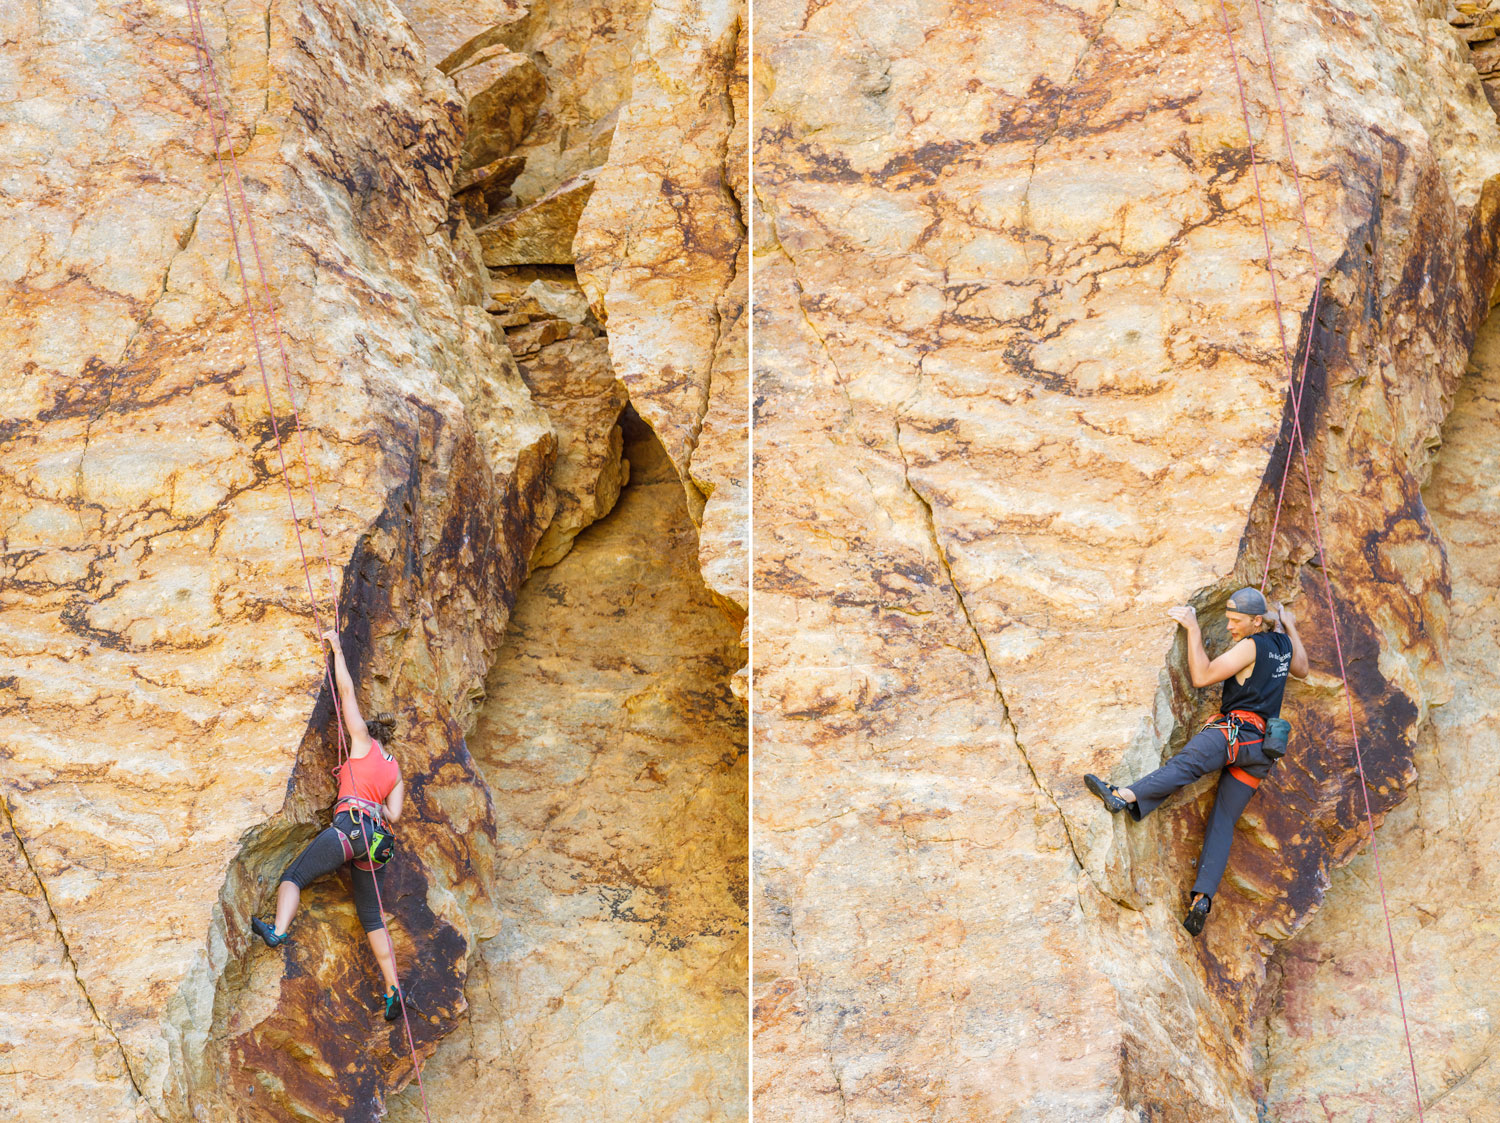 Rock climbers enjoy the canyon